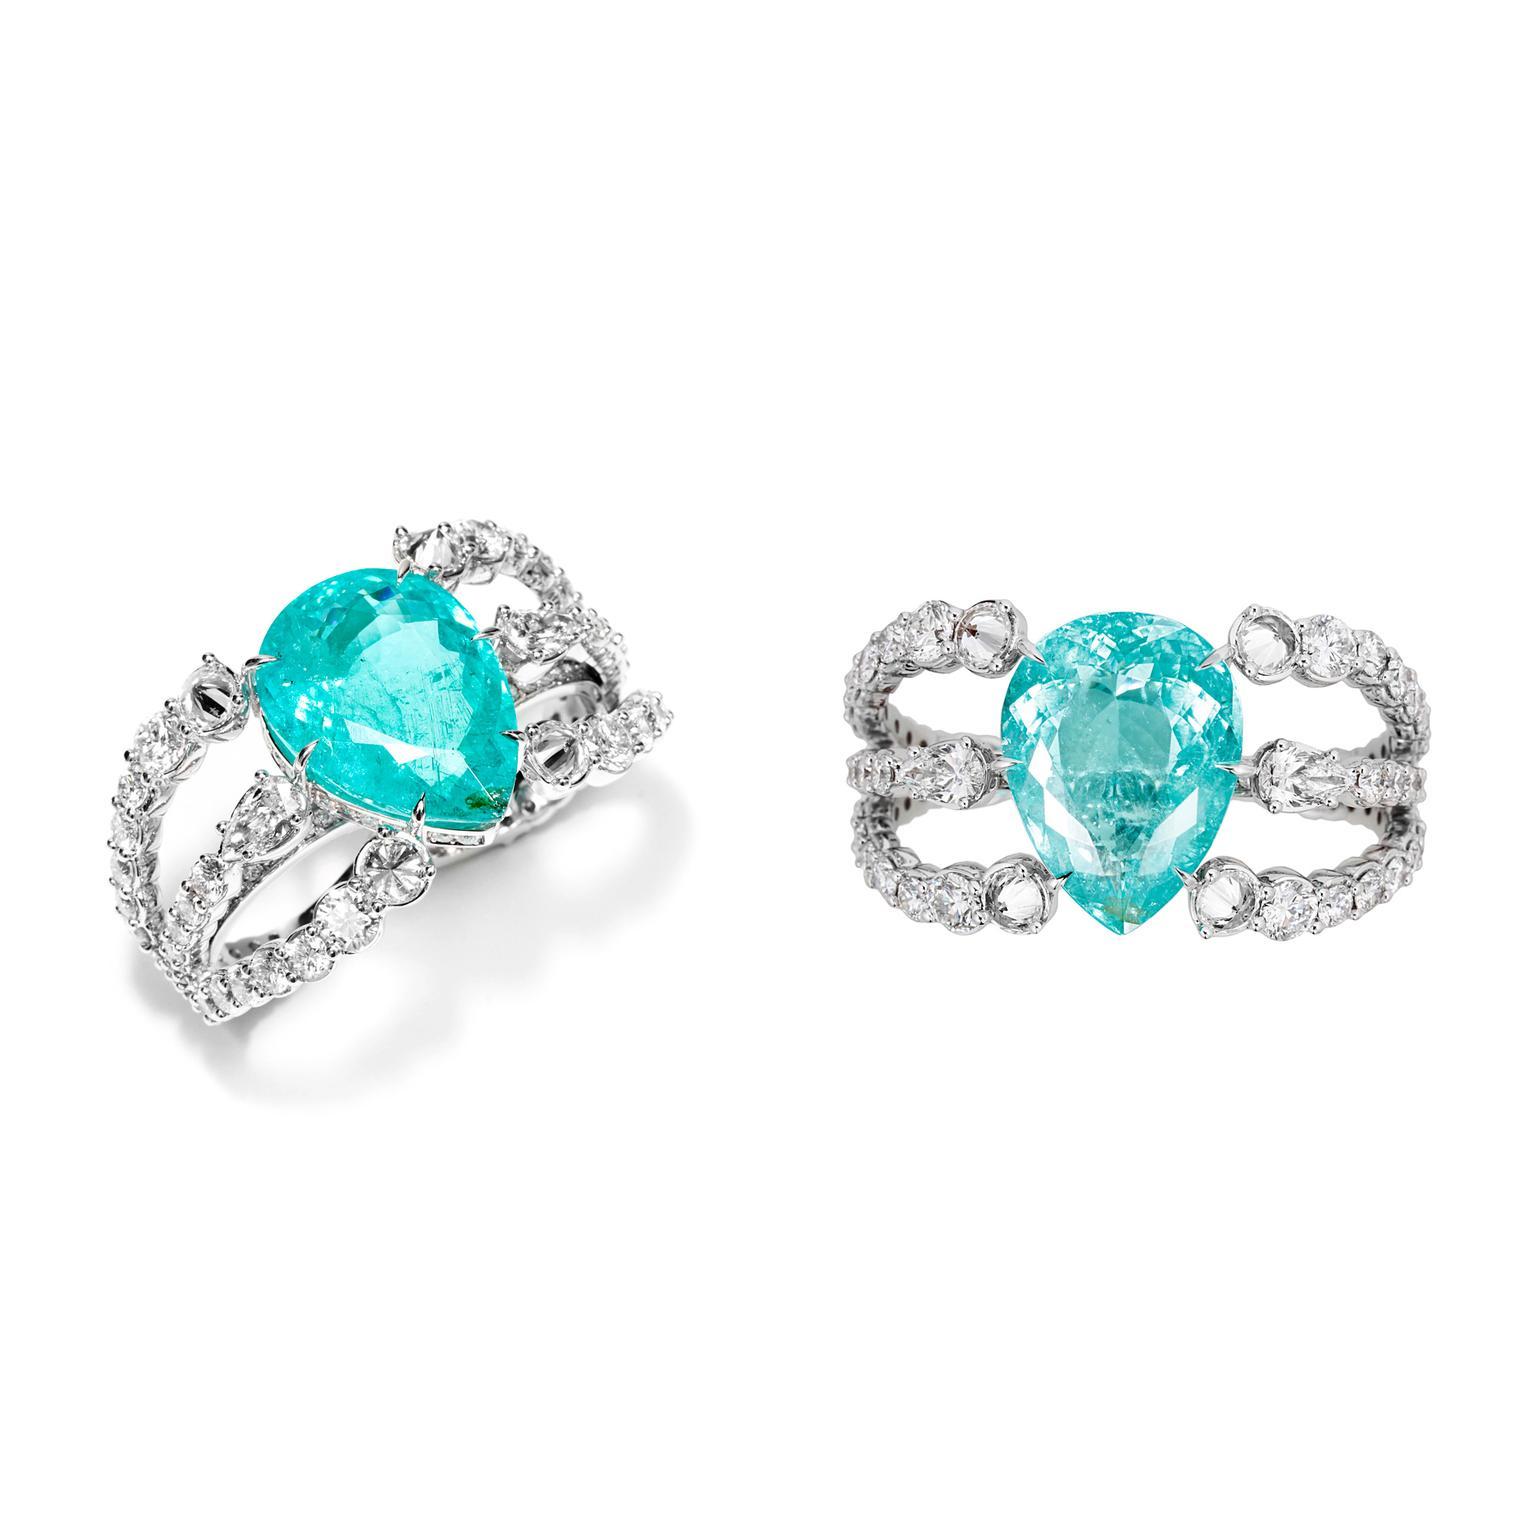 Ara Vartanian double-finger Paraiba tourmaline ring